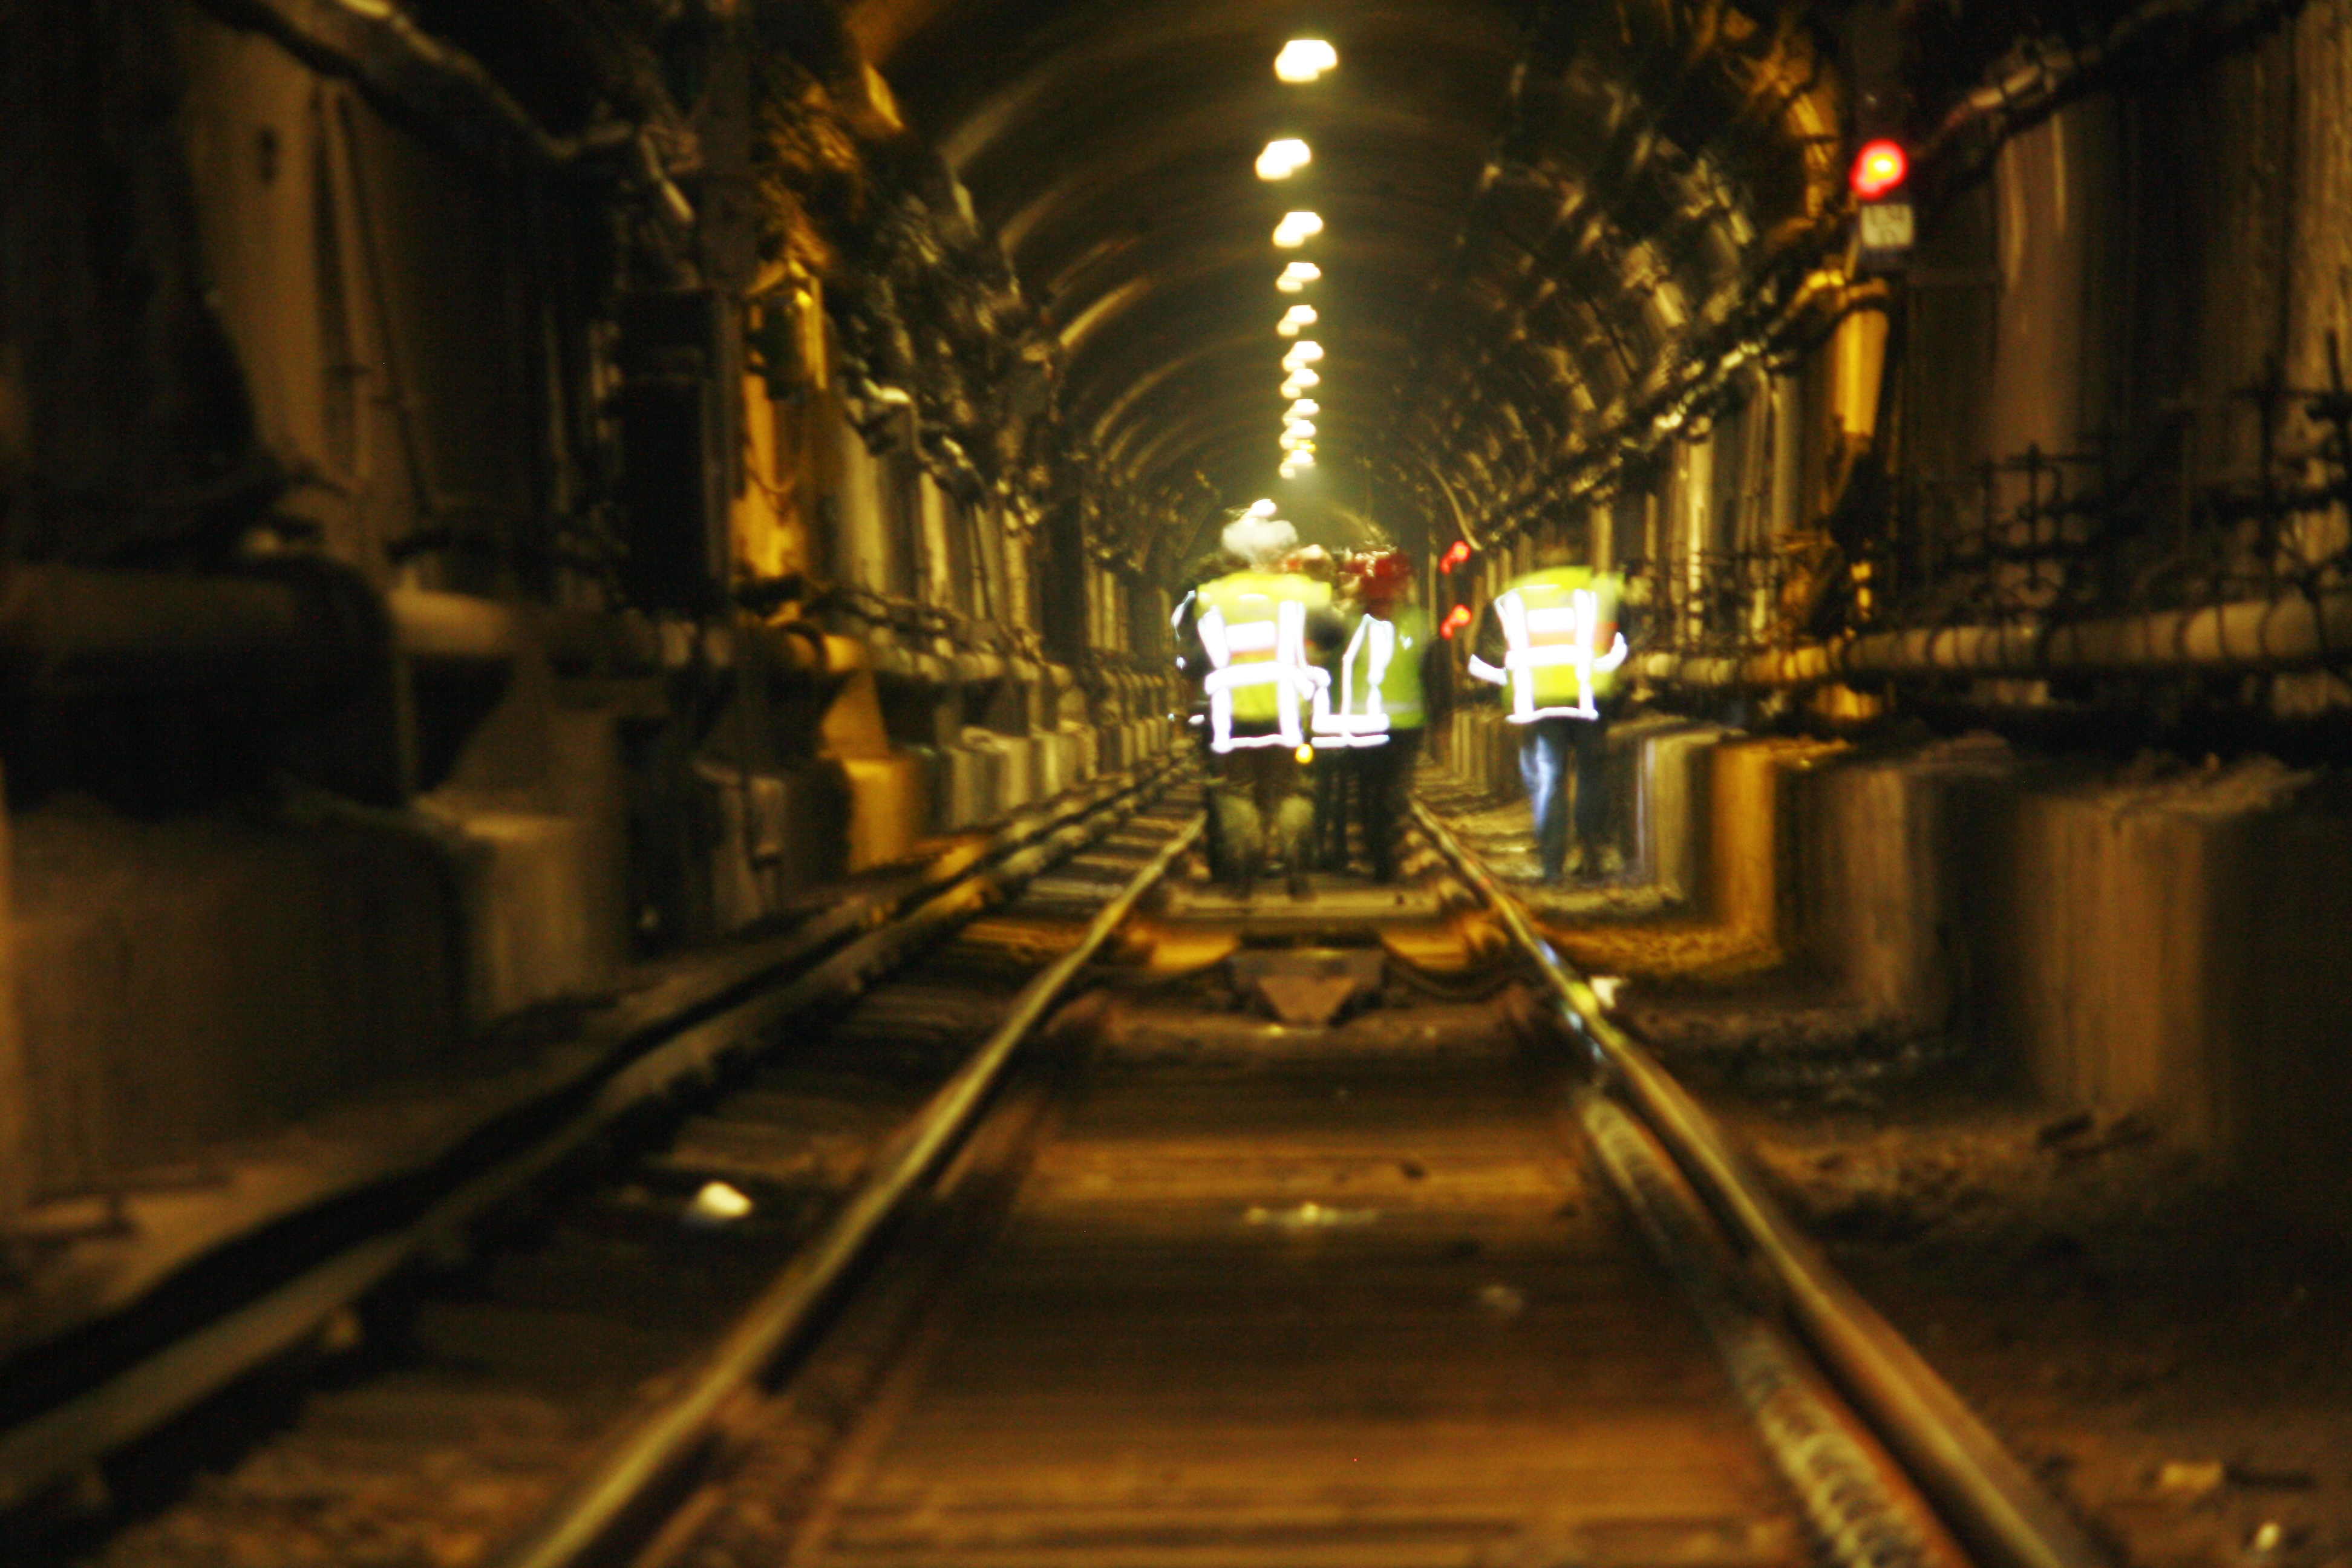 Railroad workers injured in PATH tunnel wins $3.75 million